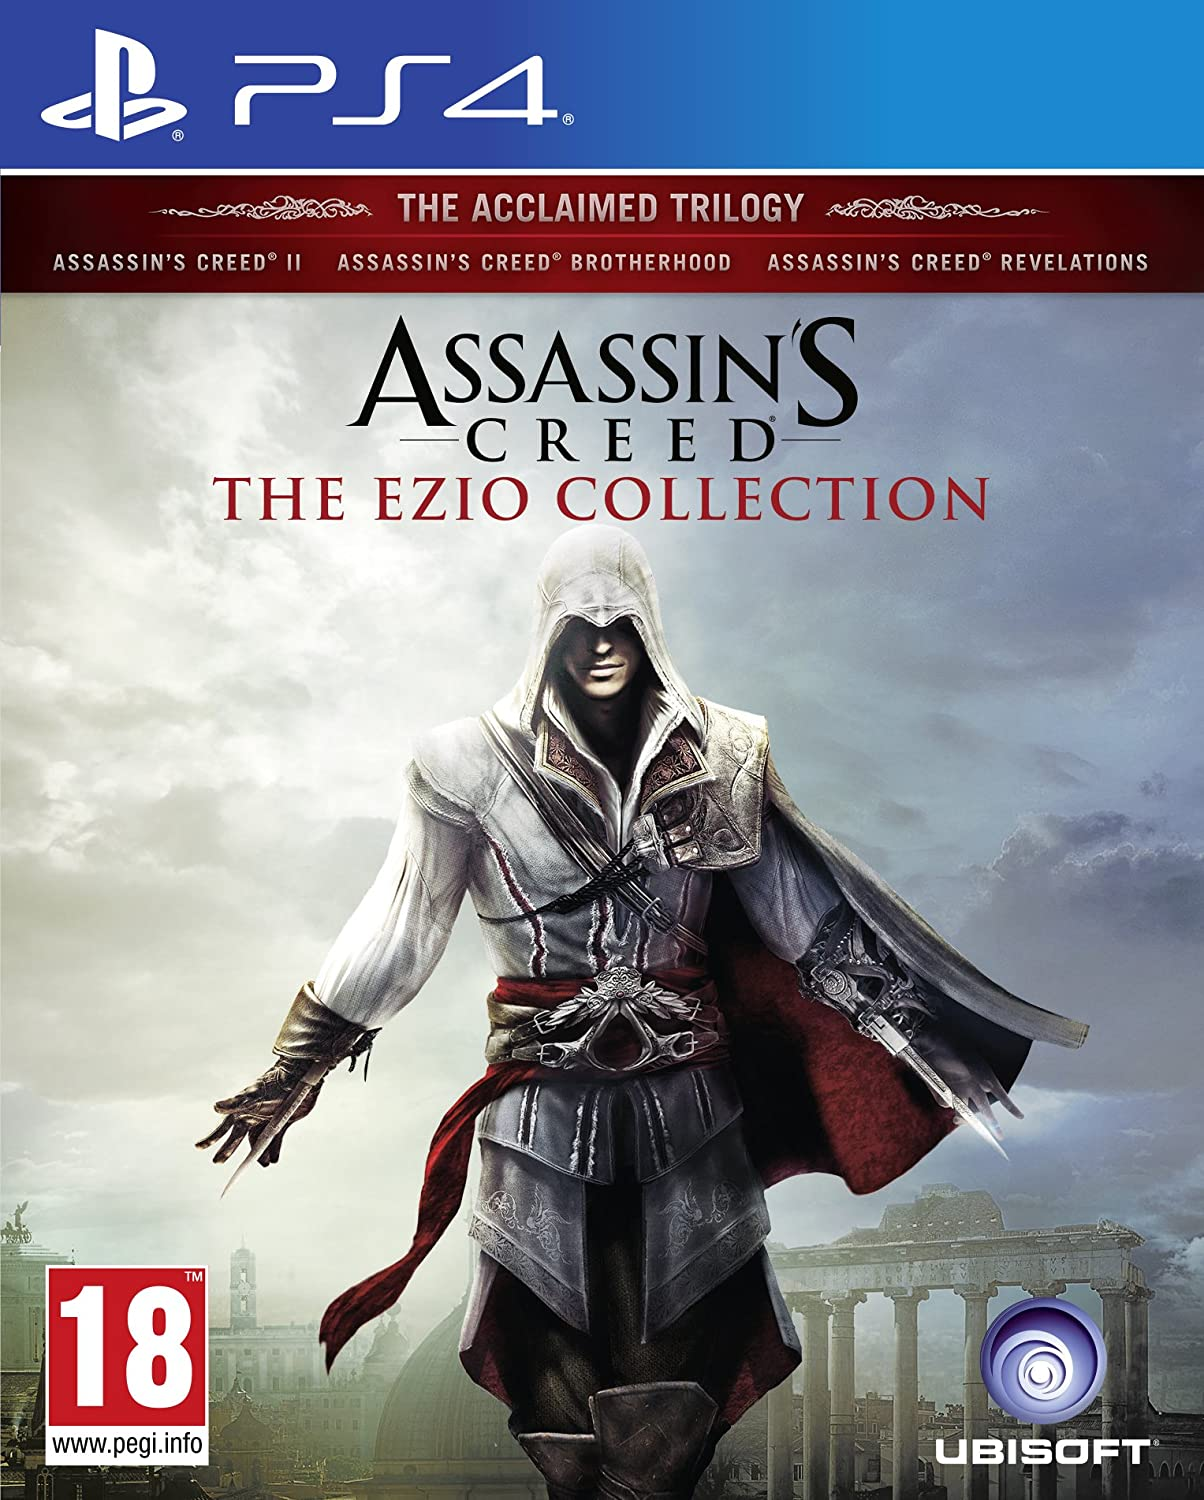 Assassins Creed The Ezio Collection Ps4 Amazon Co Uk Pc Video Games